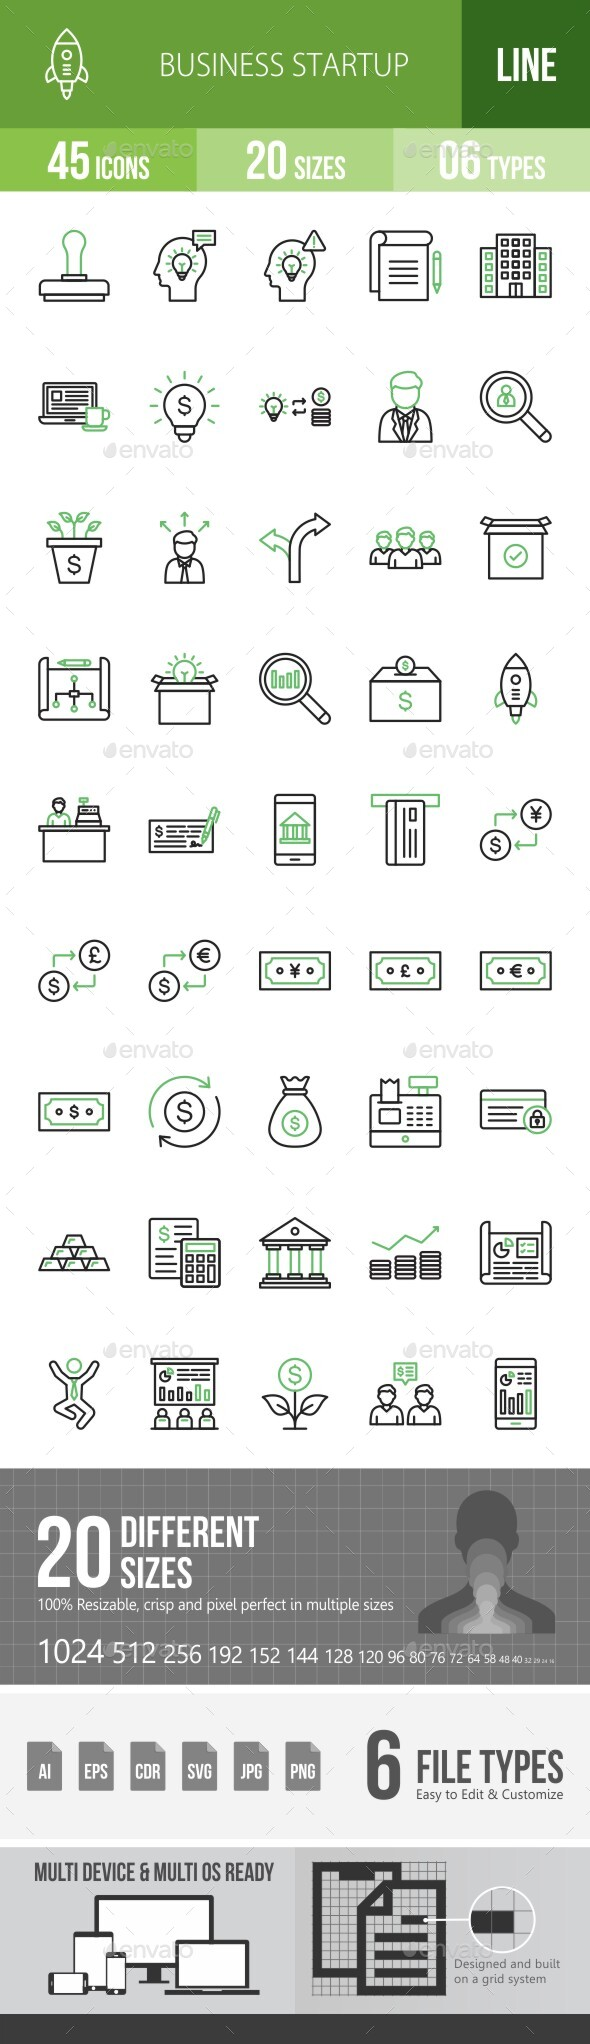 Business Startup Line Green & Black Icons